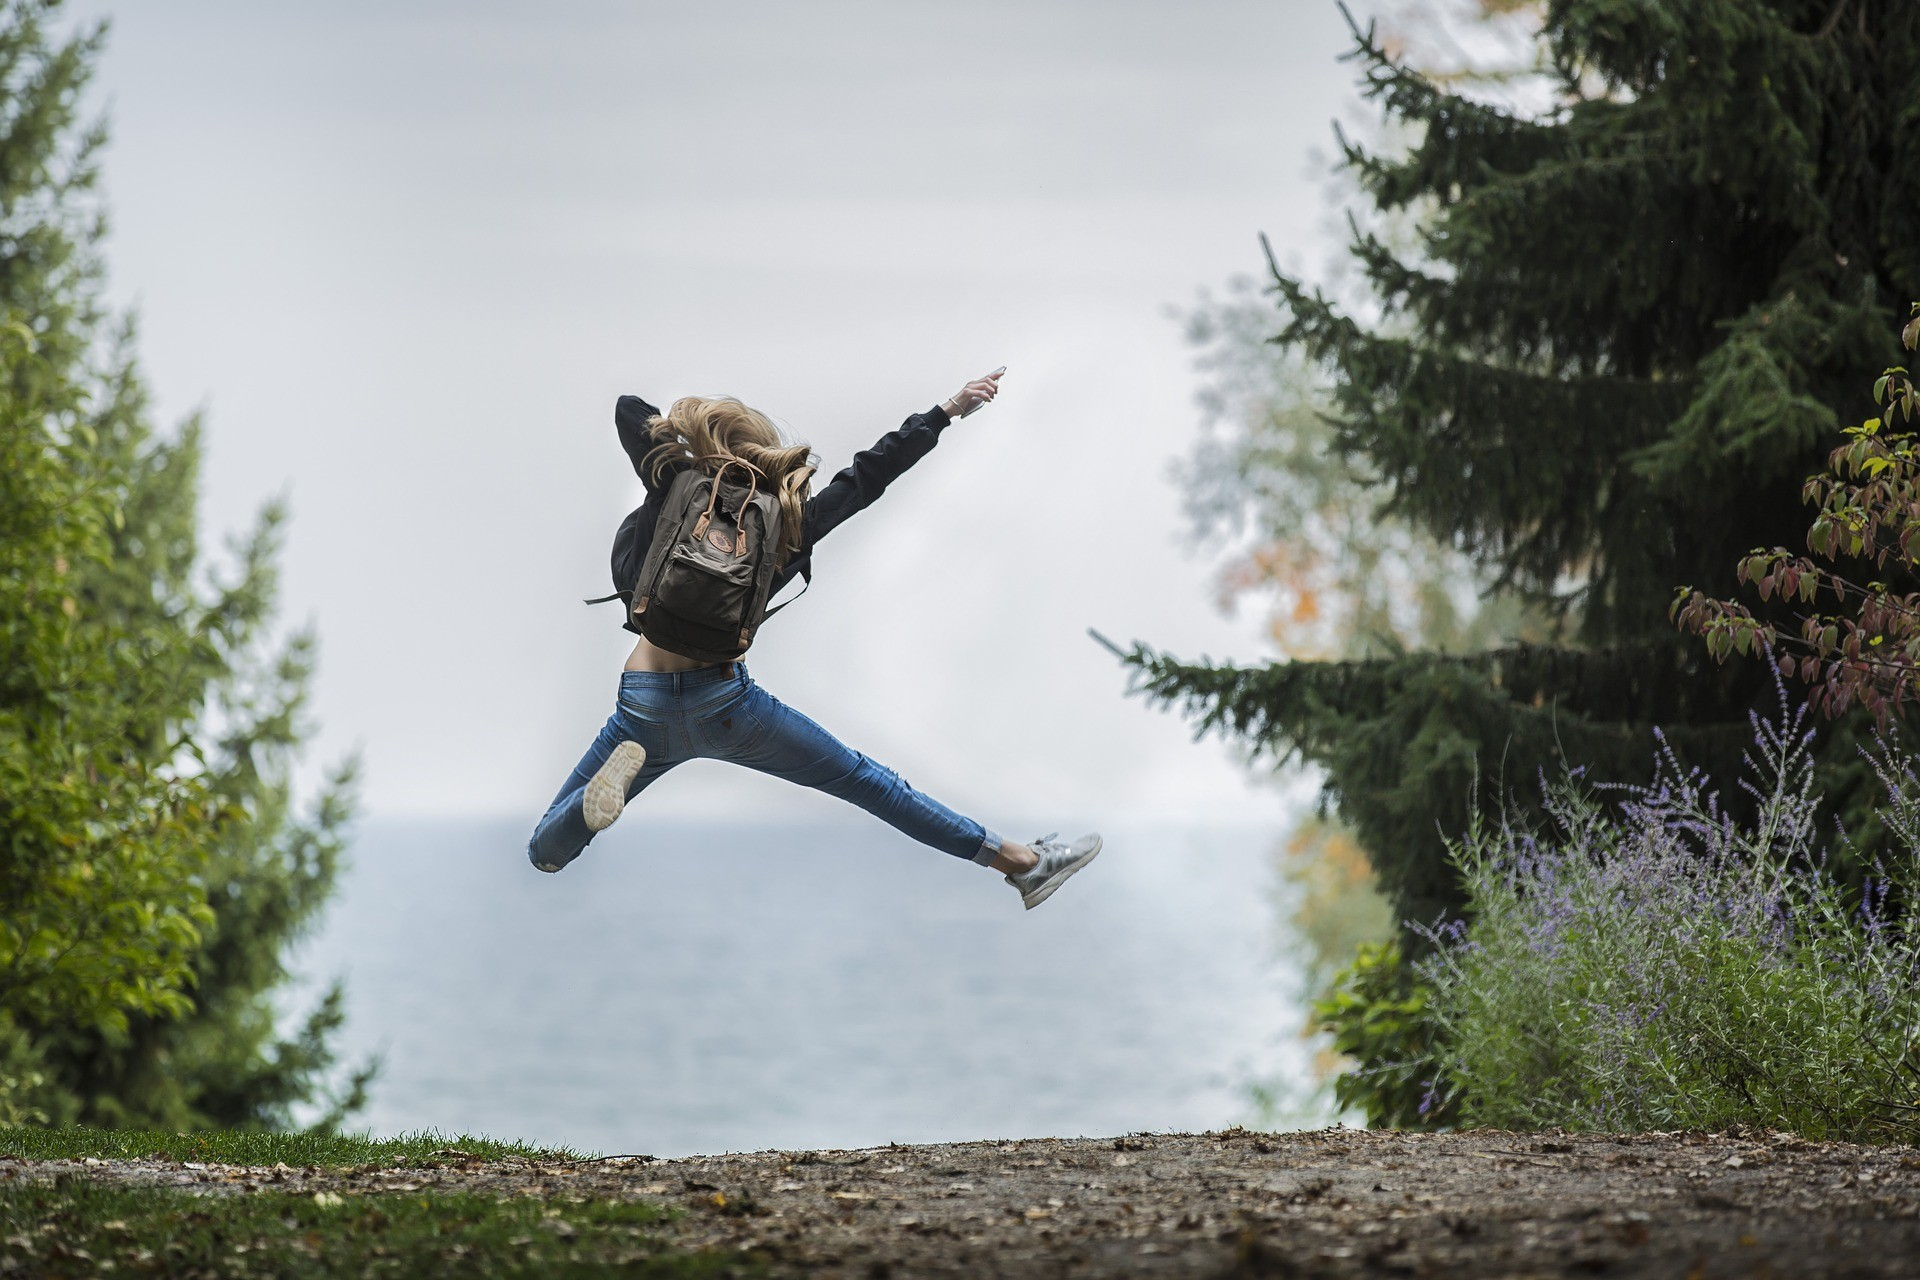 What makes you feel like jumping for joy?